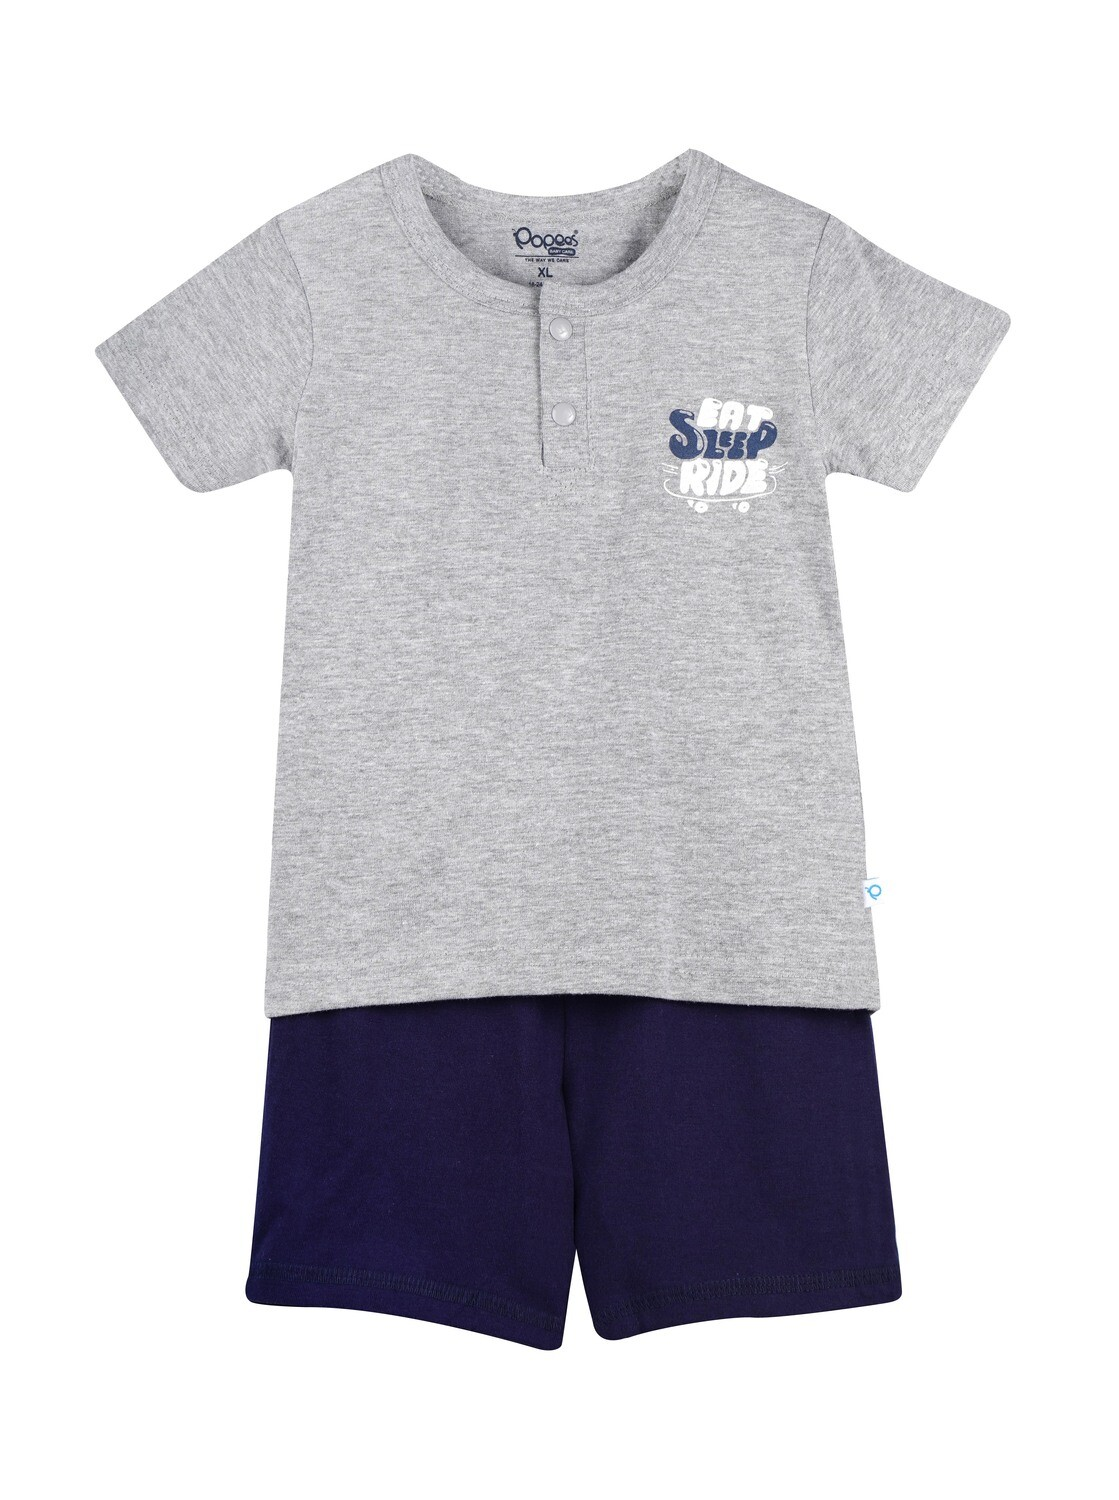 LENIN GREY MARL Half Sleeve Front Half Open Top and Trouser SINGLE JERSEY for Baby Boys